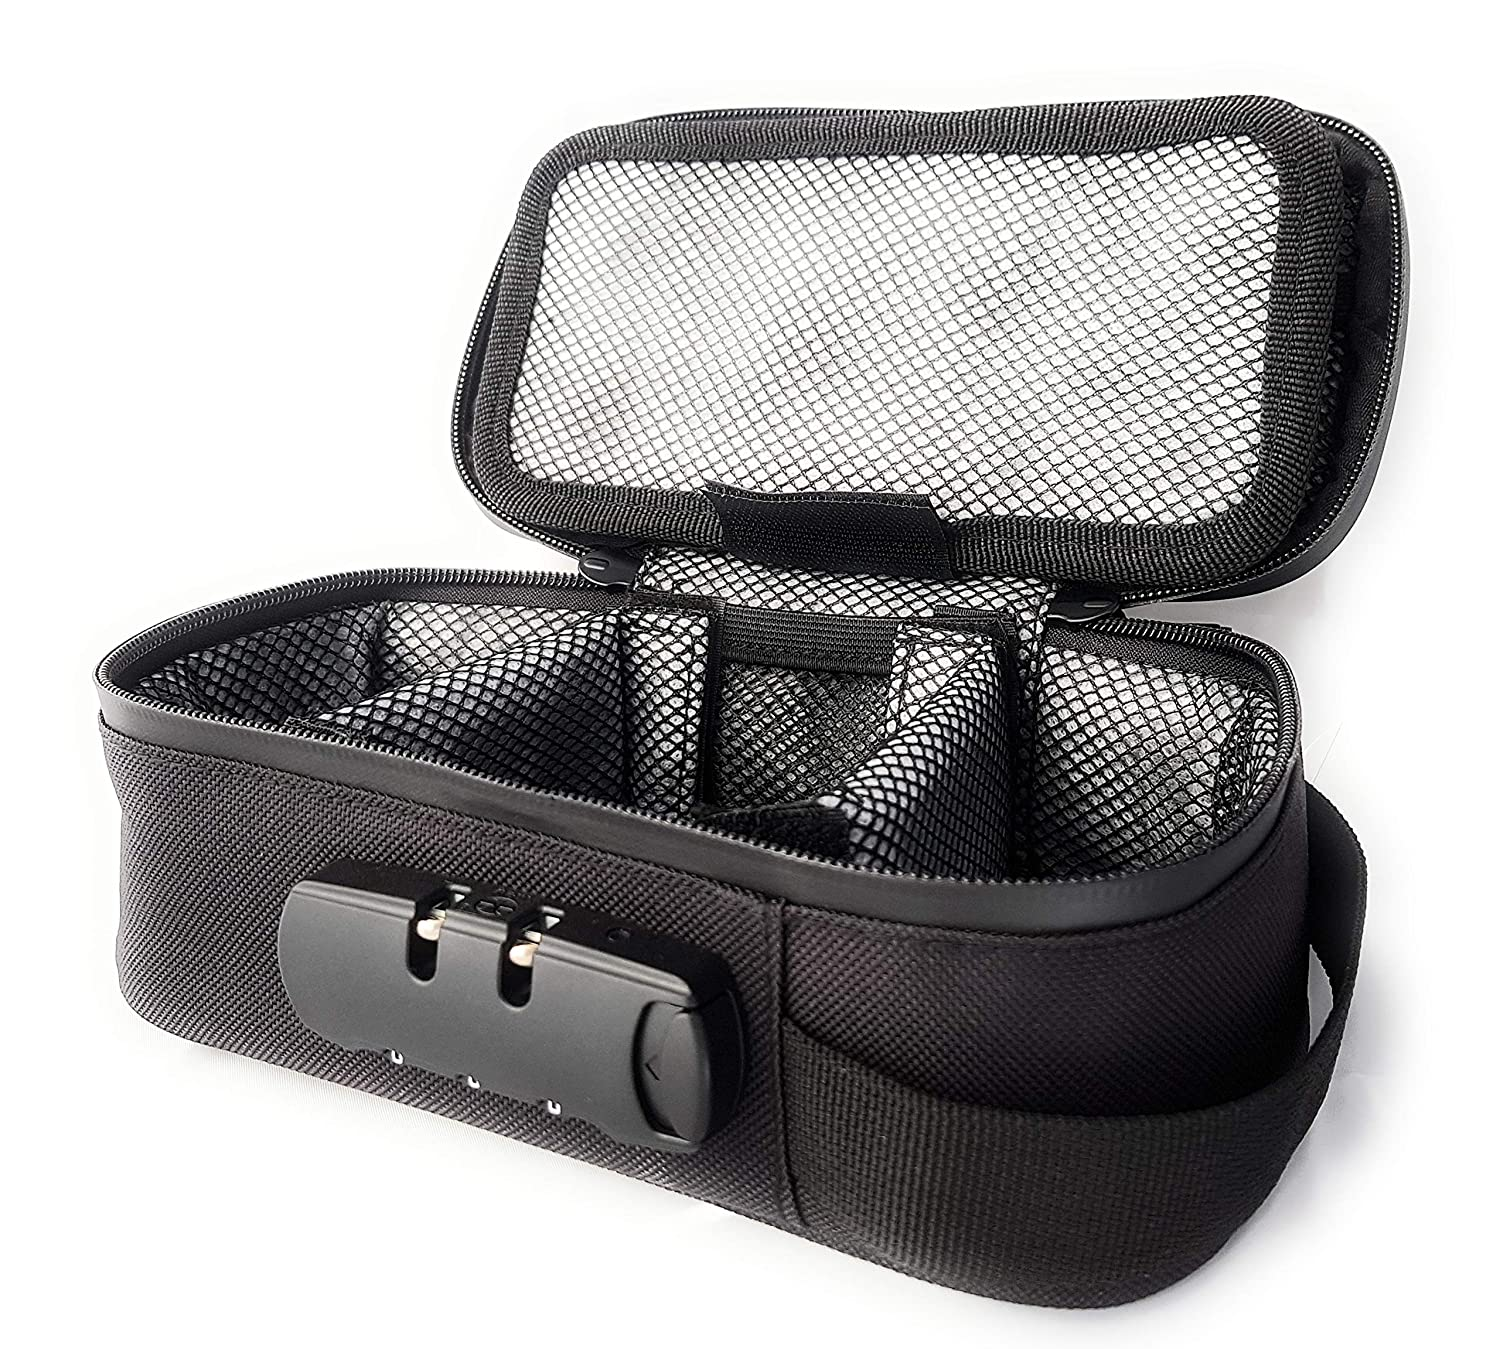 Discreetly Store All Your Smelly Smoking Accessories Safely Stashic Rolling Box Smell Proof Bag Lockable Case Stash Box Odor Absorbing Activated Carbon Lining Premium Lockable Case SH*